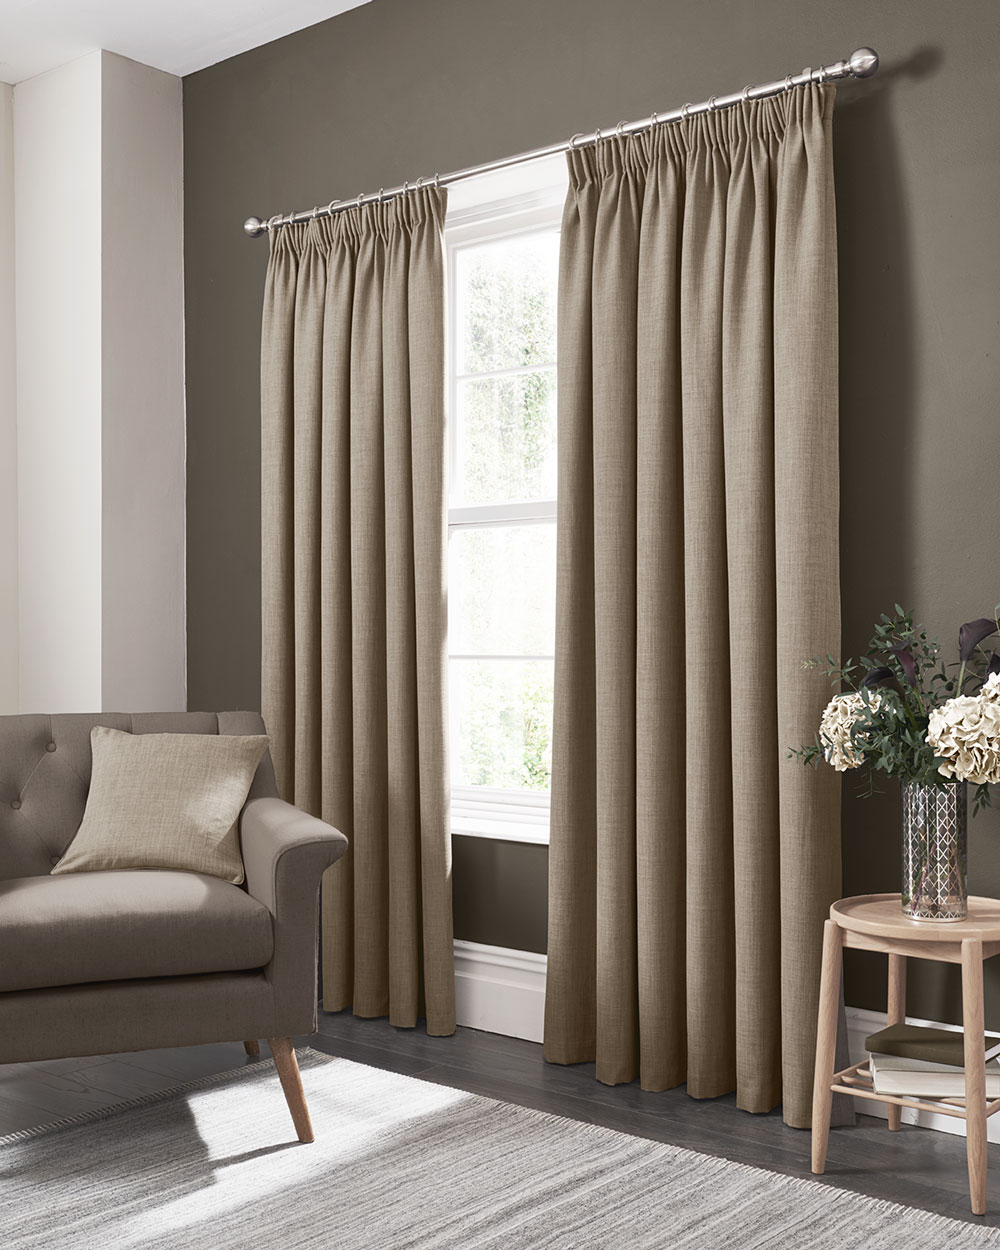 Studio G Elba Pencil Pleat Curtains  Linen Ready Made Curtains - Product code: M1105/03/46X9